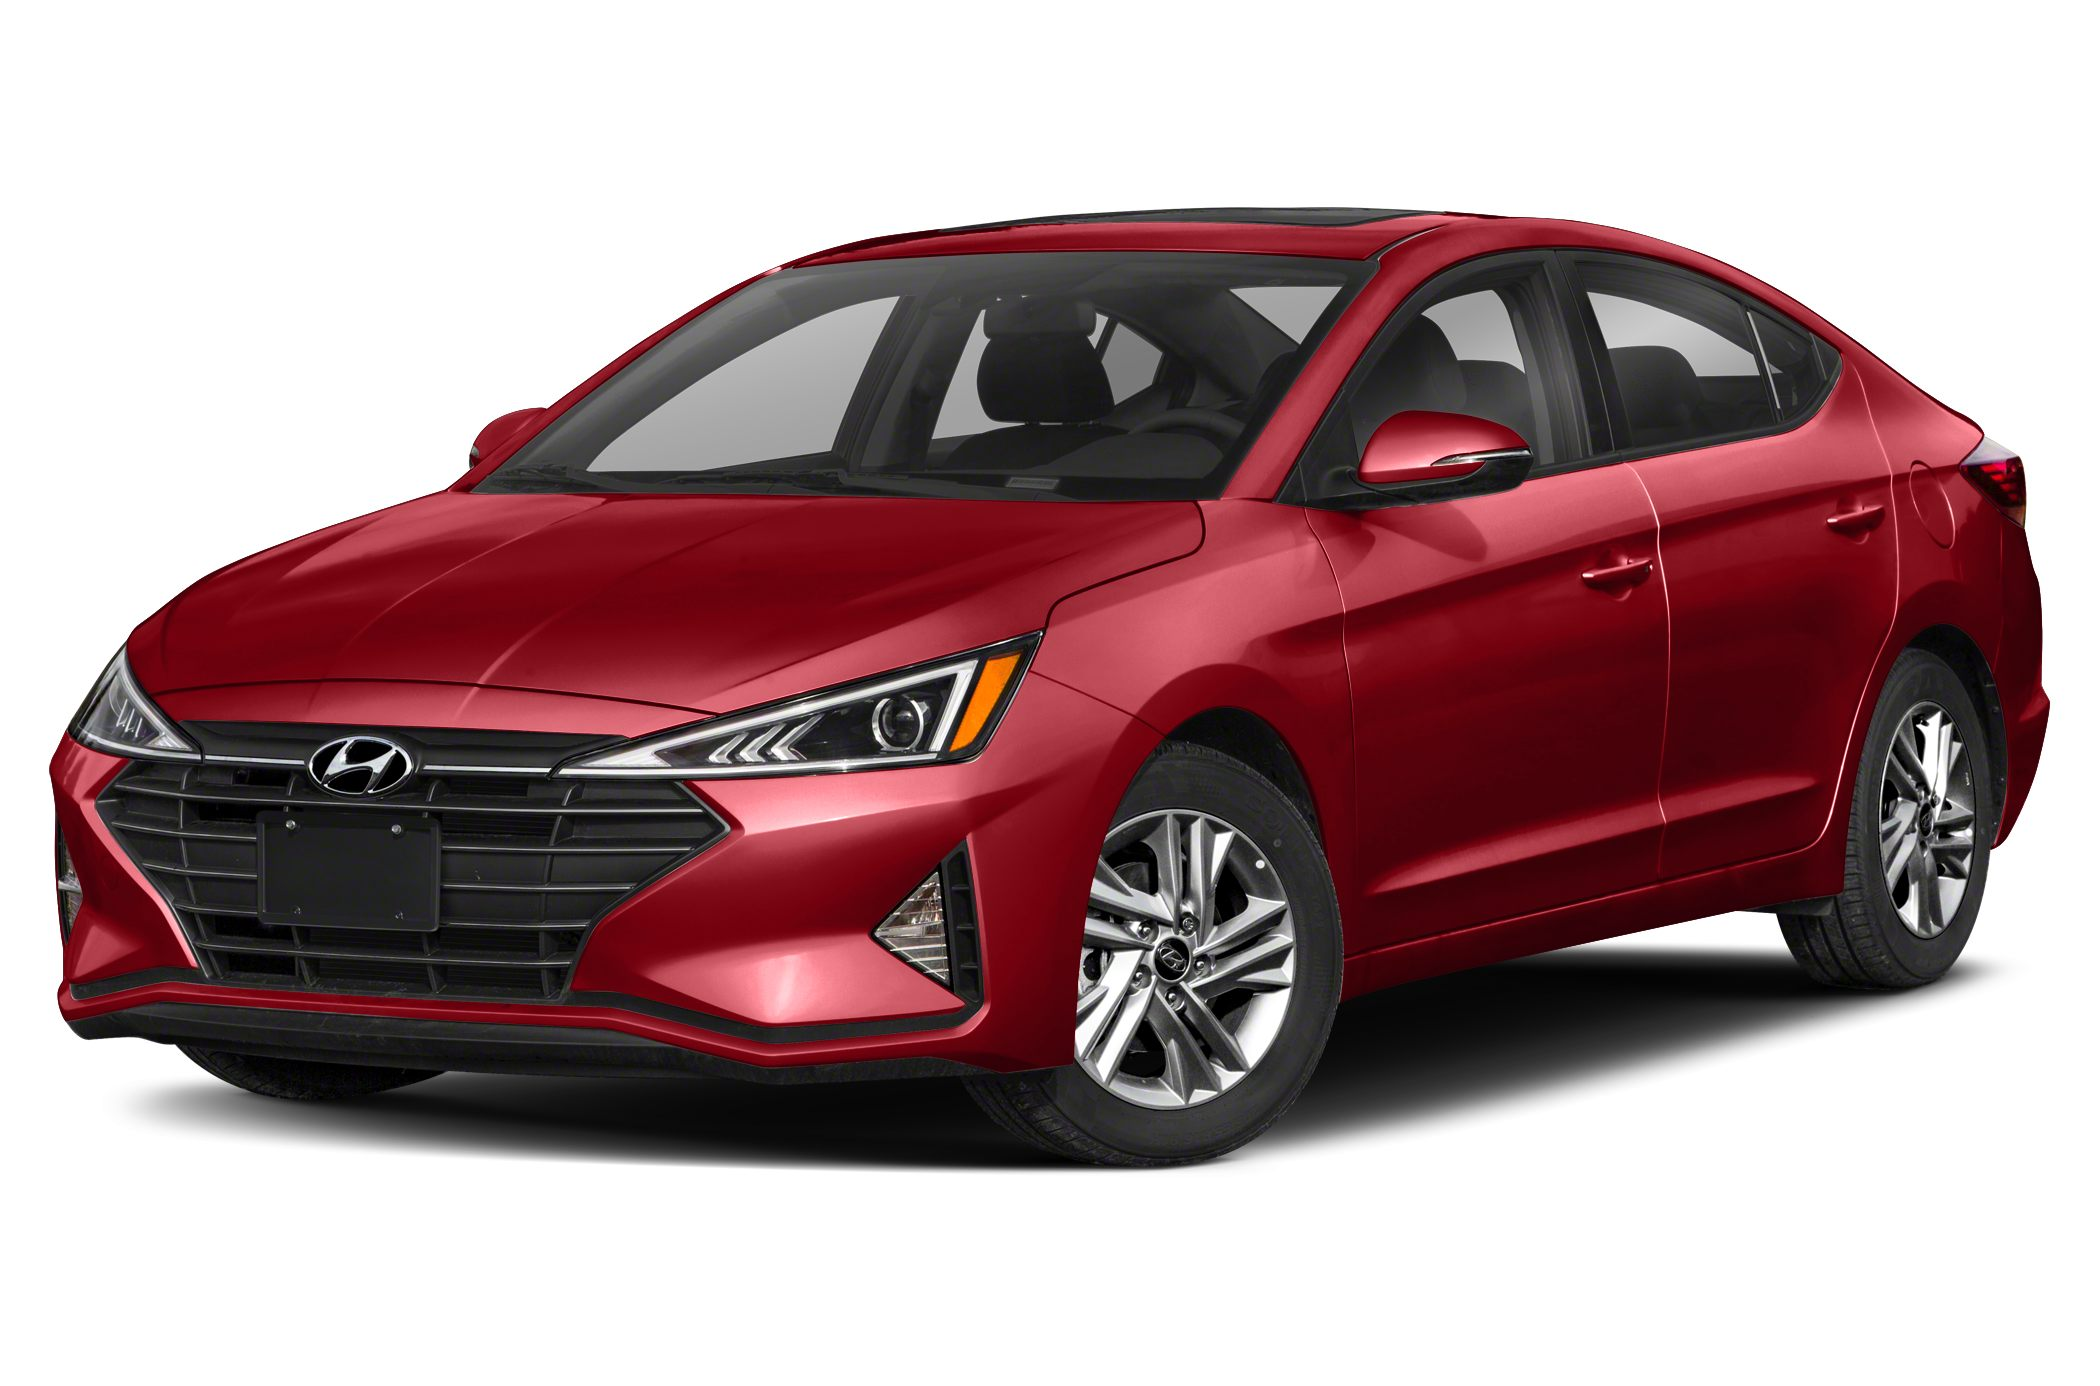 Hyundai Canada Incentives for the new 2021 Hyundai Elantra Sedan Superstructure and Coupe in Milton, Toronto, and the GTA